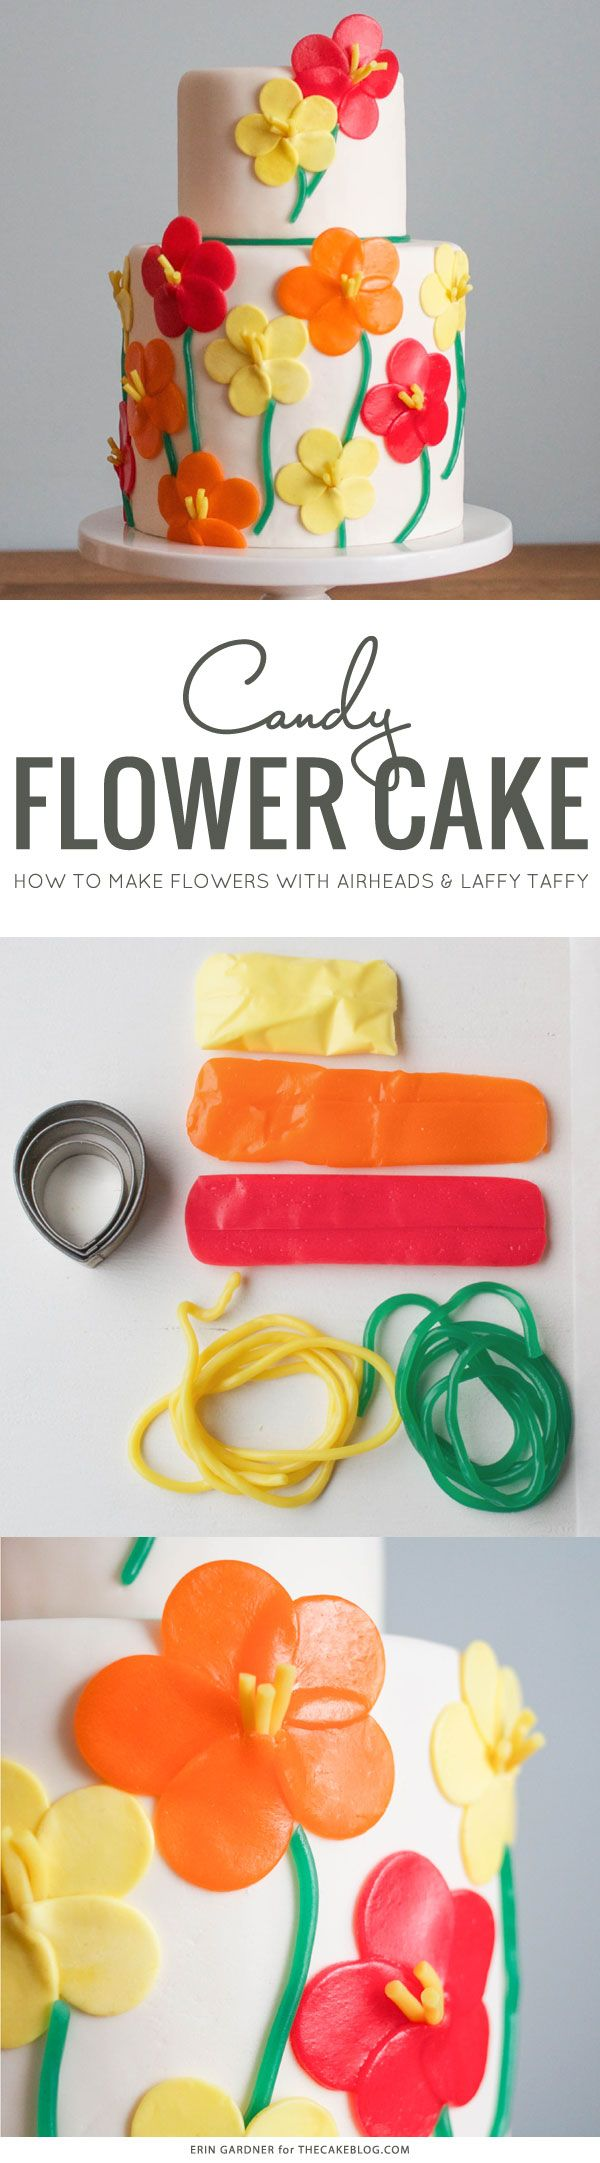 Learn how to make this floral cake using Airheads and Laffy Taffy candy. A step-by-step tutorial by Erin Gardner for TheCakeBlog.com.